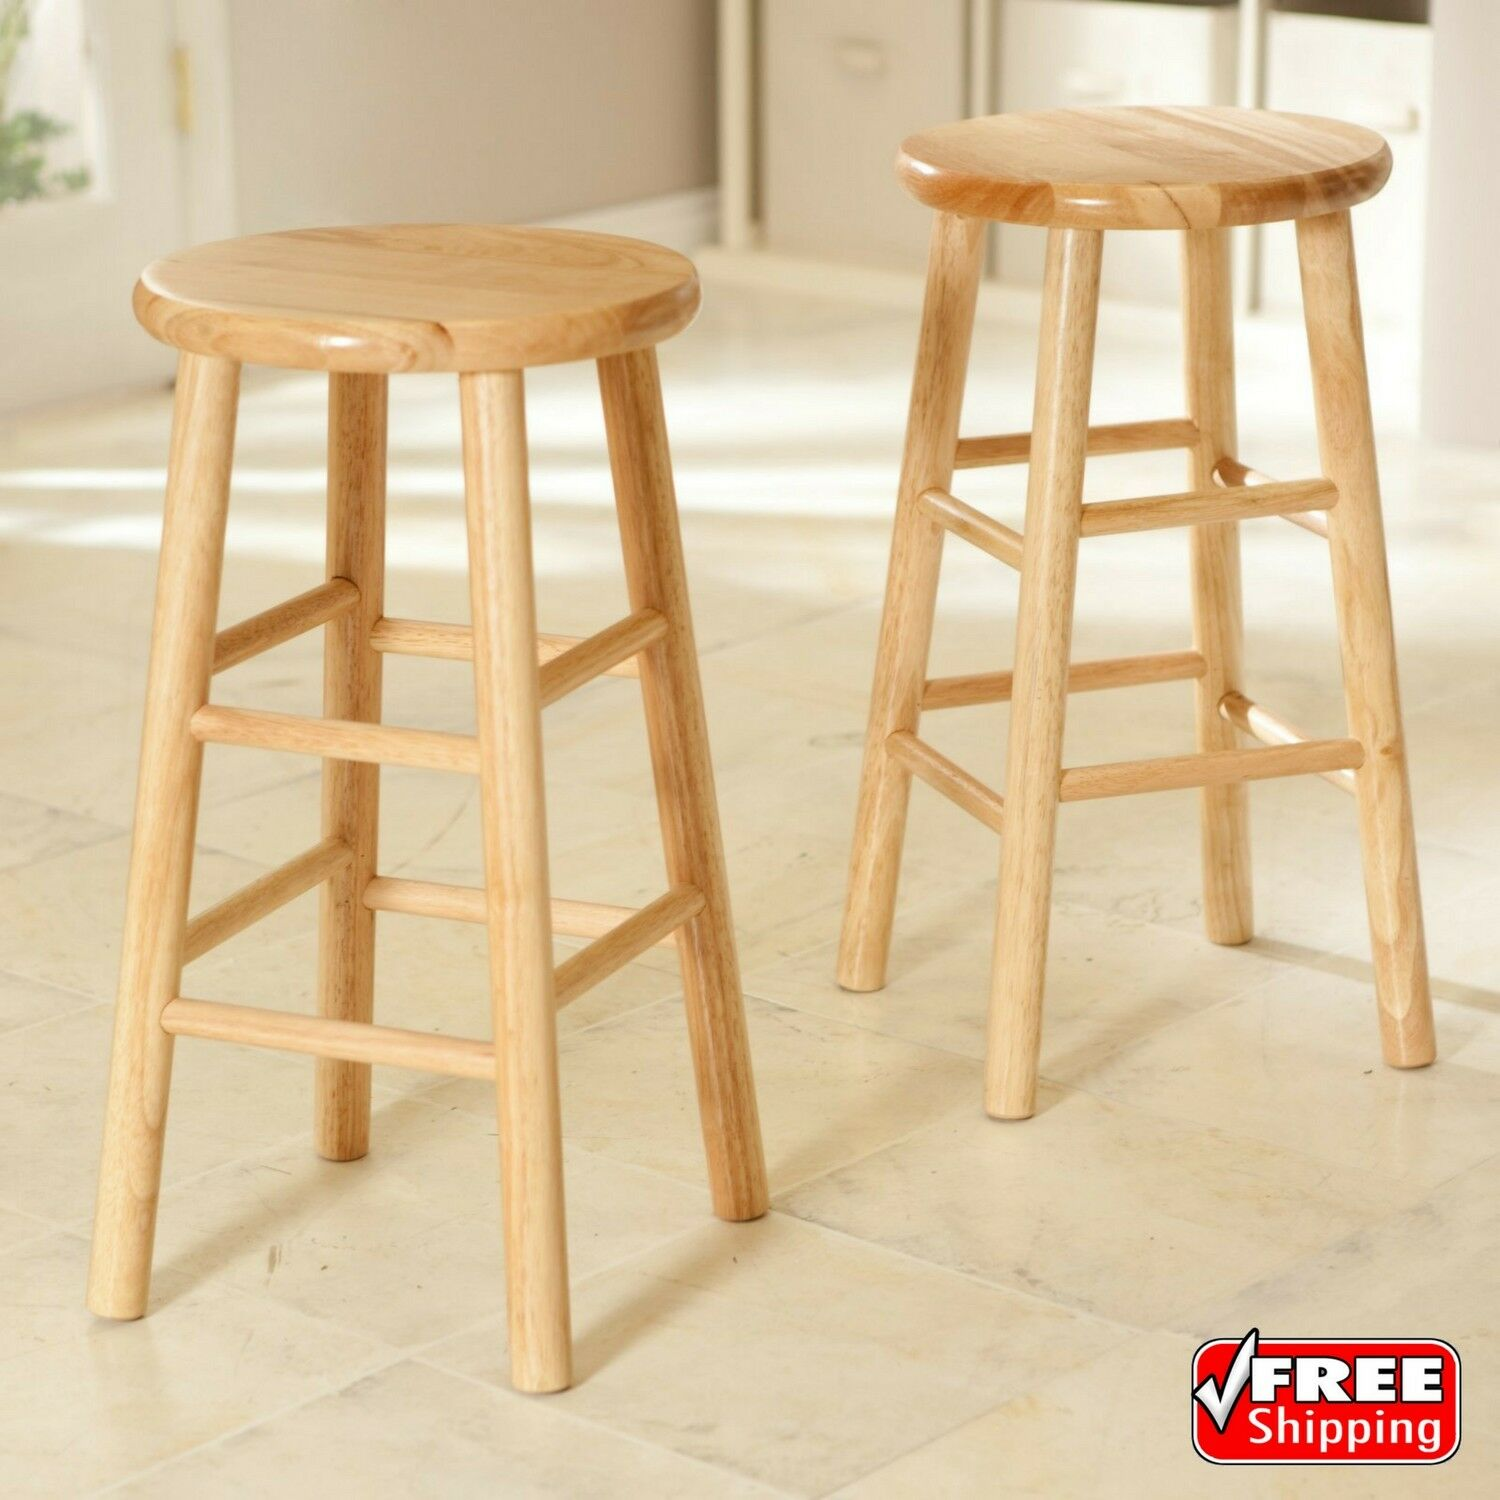 Winsome 81784 Tabby Stool Natural